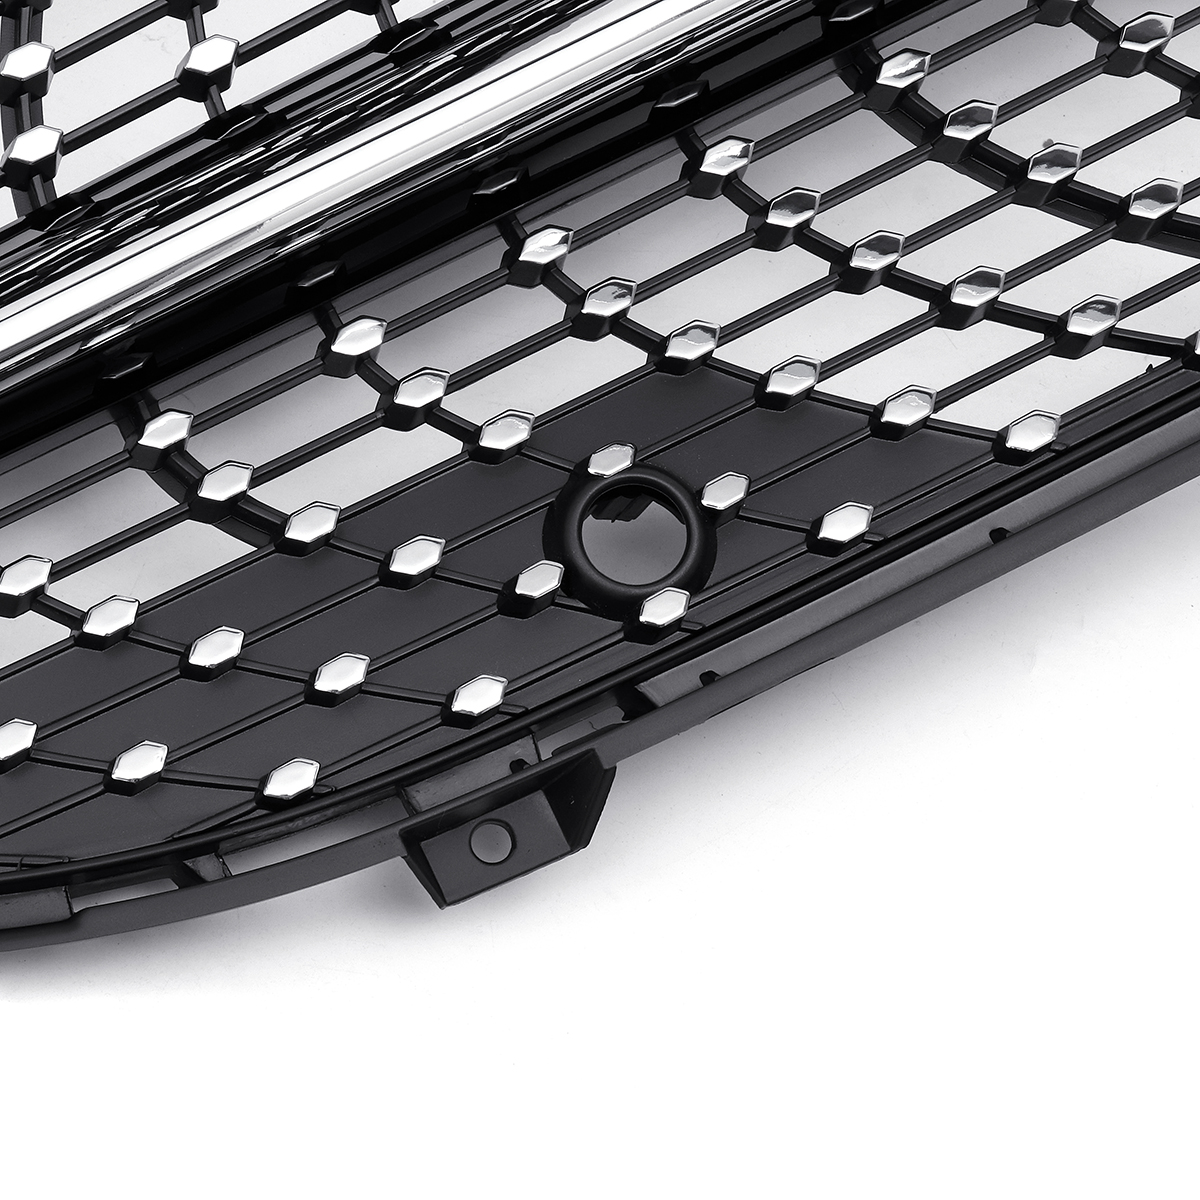 Black Diamond Gt Style Front Grille For Mercedes Benz A